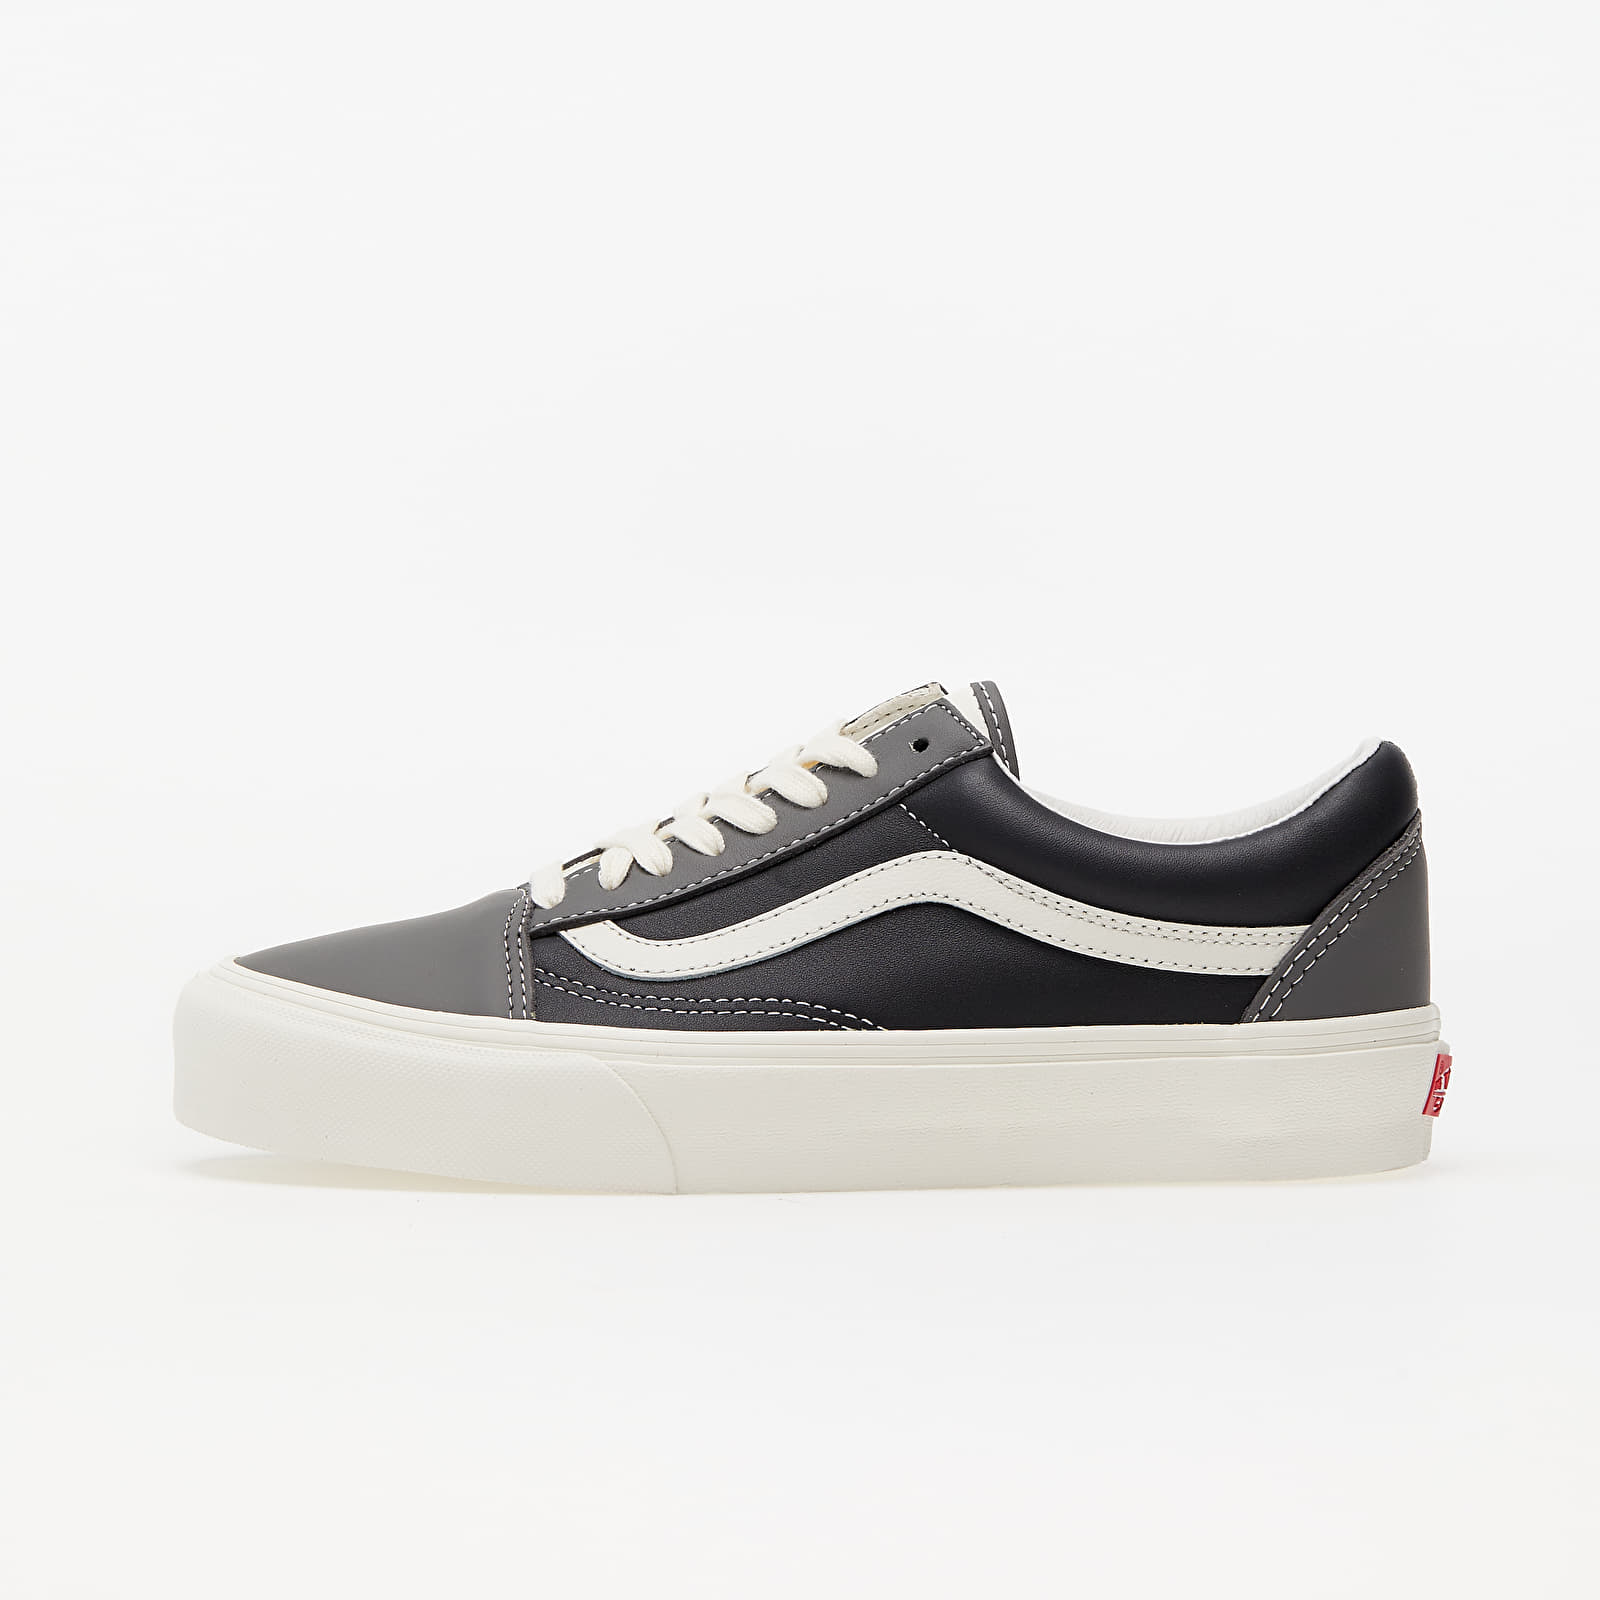 Vans Old Skool Vlt LX (Leather) Charcoal/ Black EUR 34.5